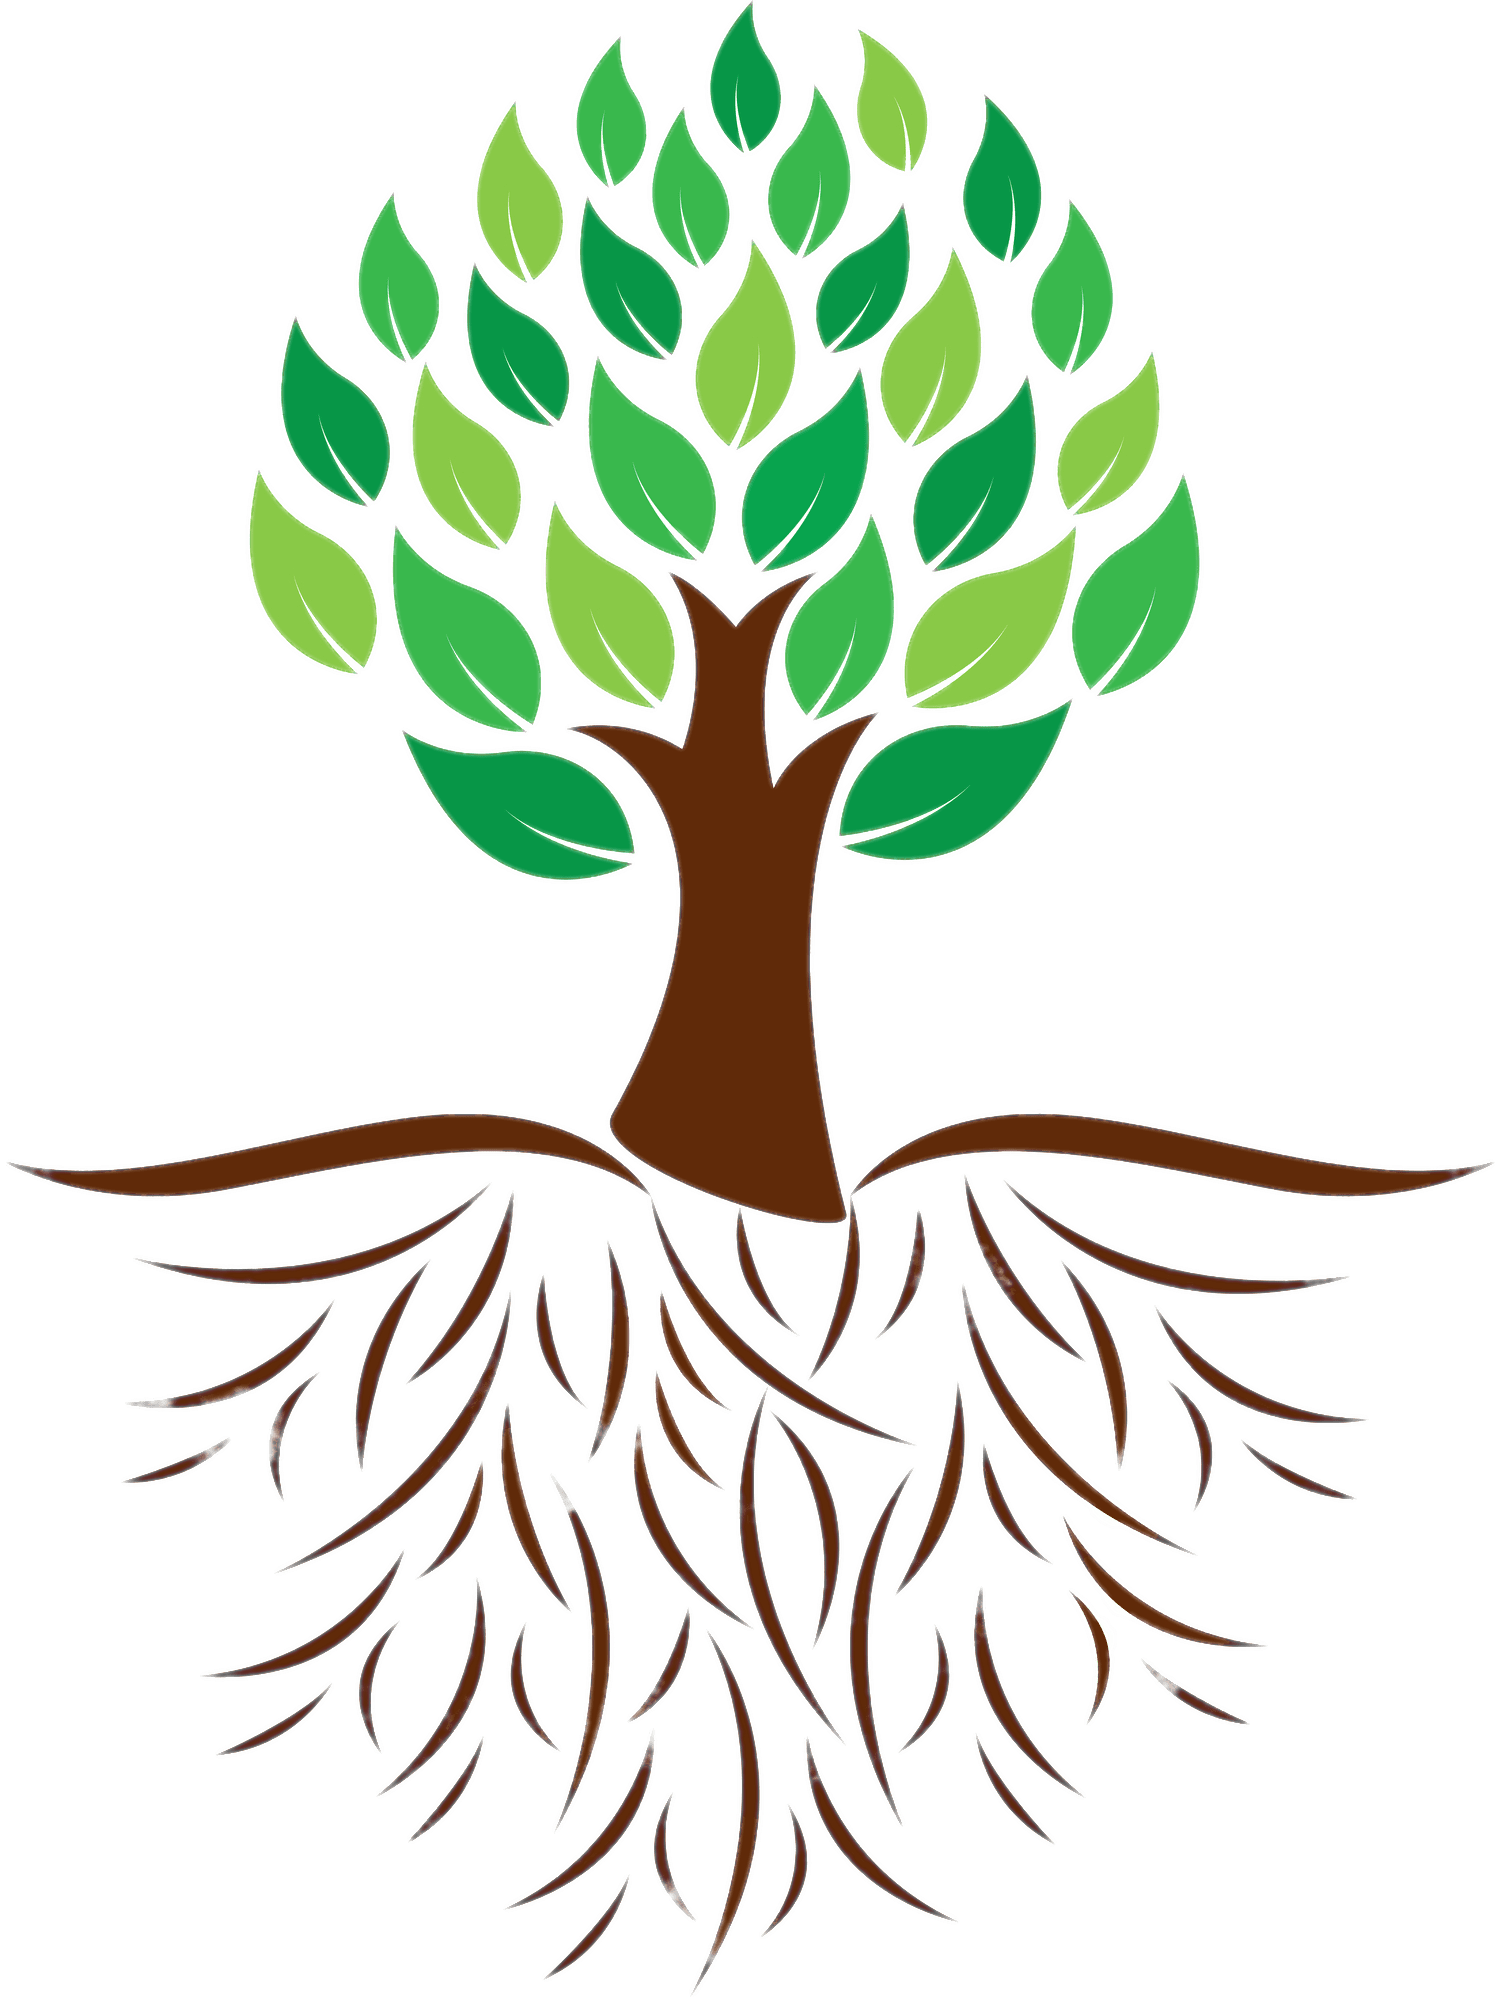 Cross roots clipart picture black and white library Tree and Roots Colour Illustration transparent PNG - StickPNG picture black and white library